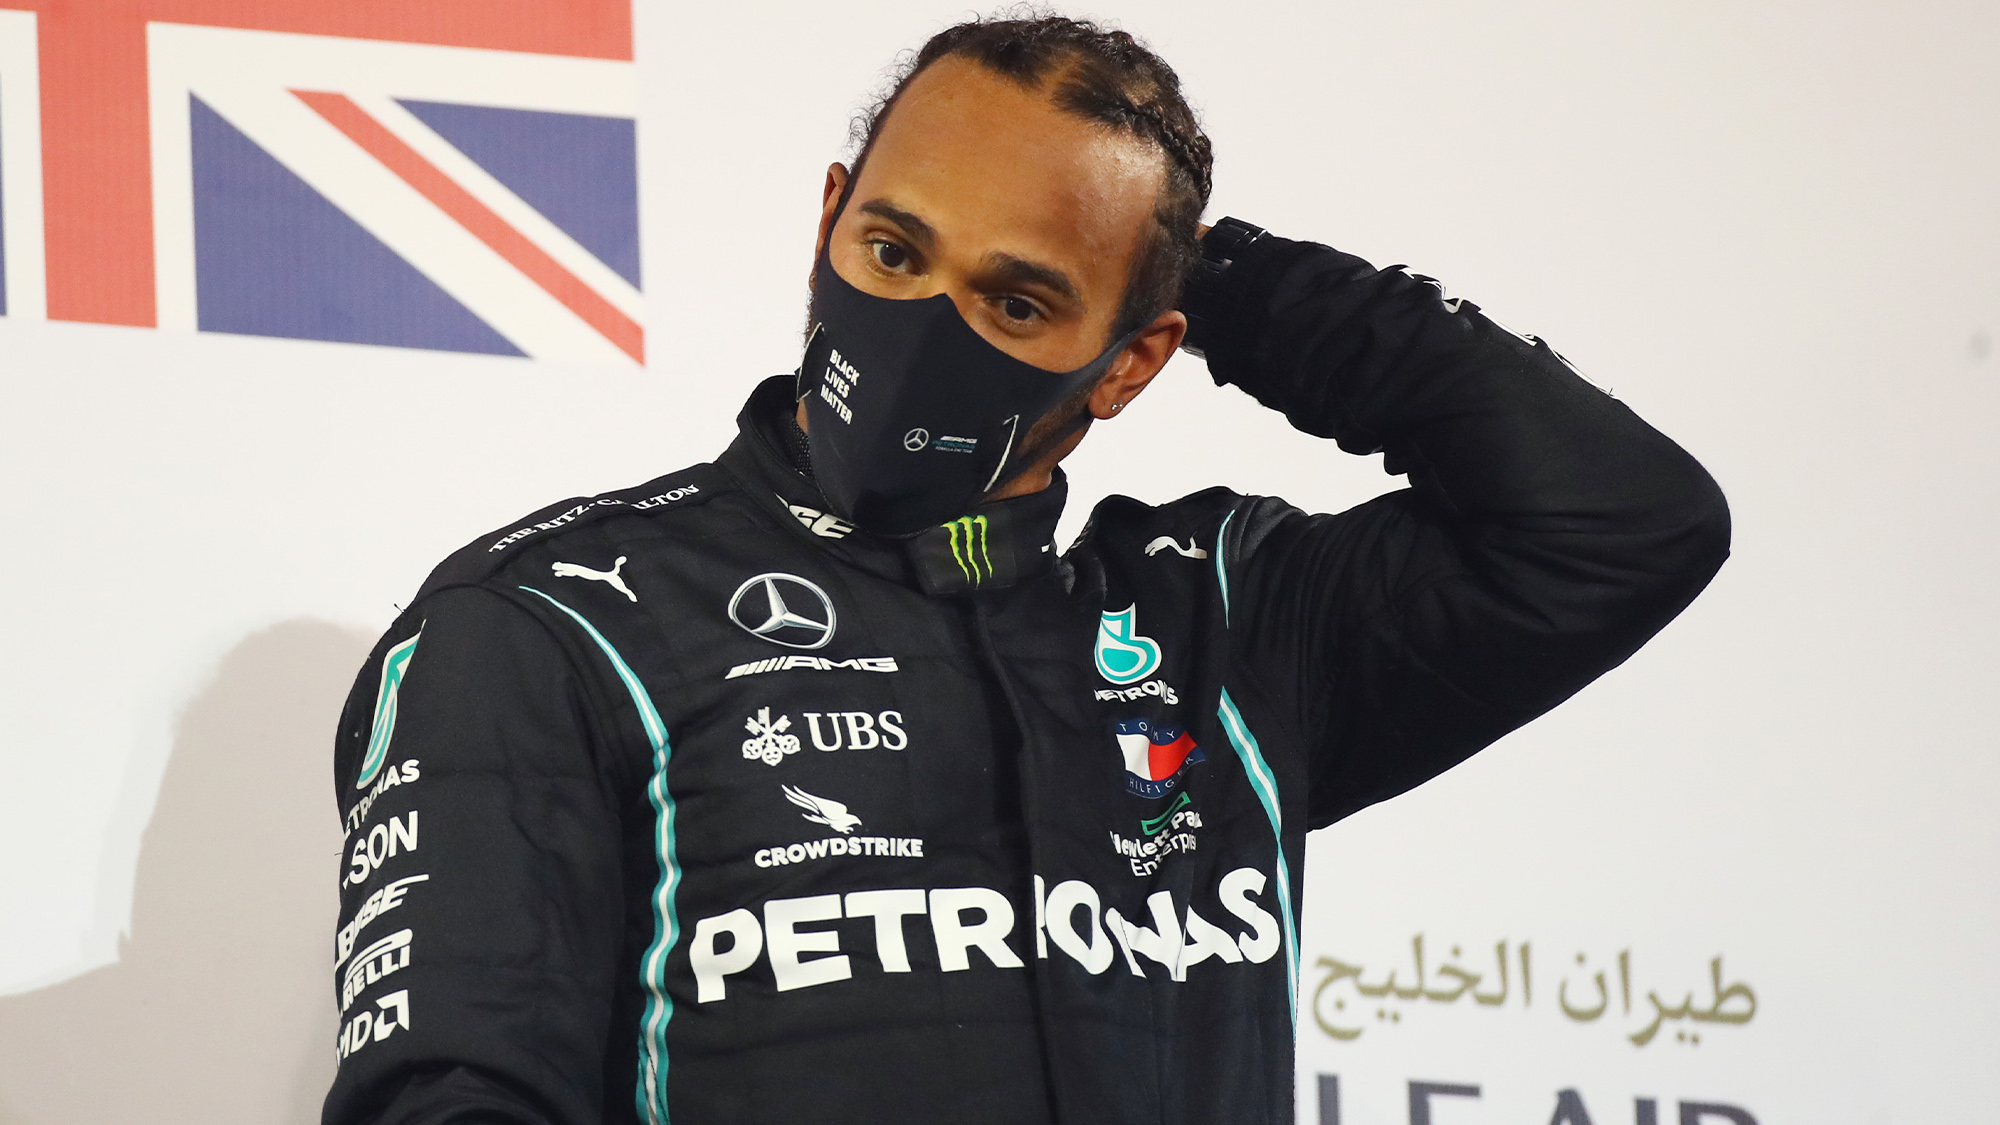 Lewis Hamilton 'devastated' to miss Sakhir GP after positive Covid-19 test